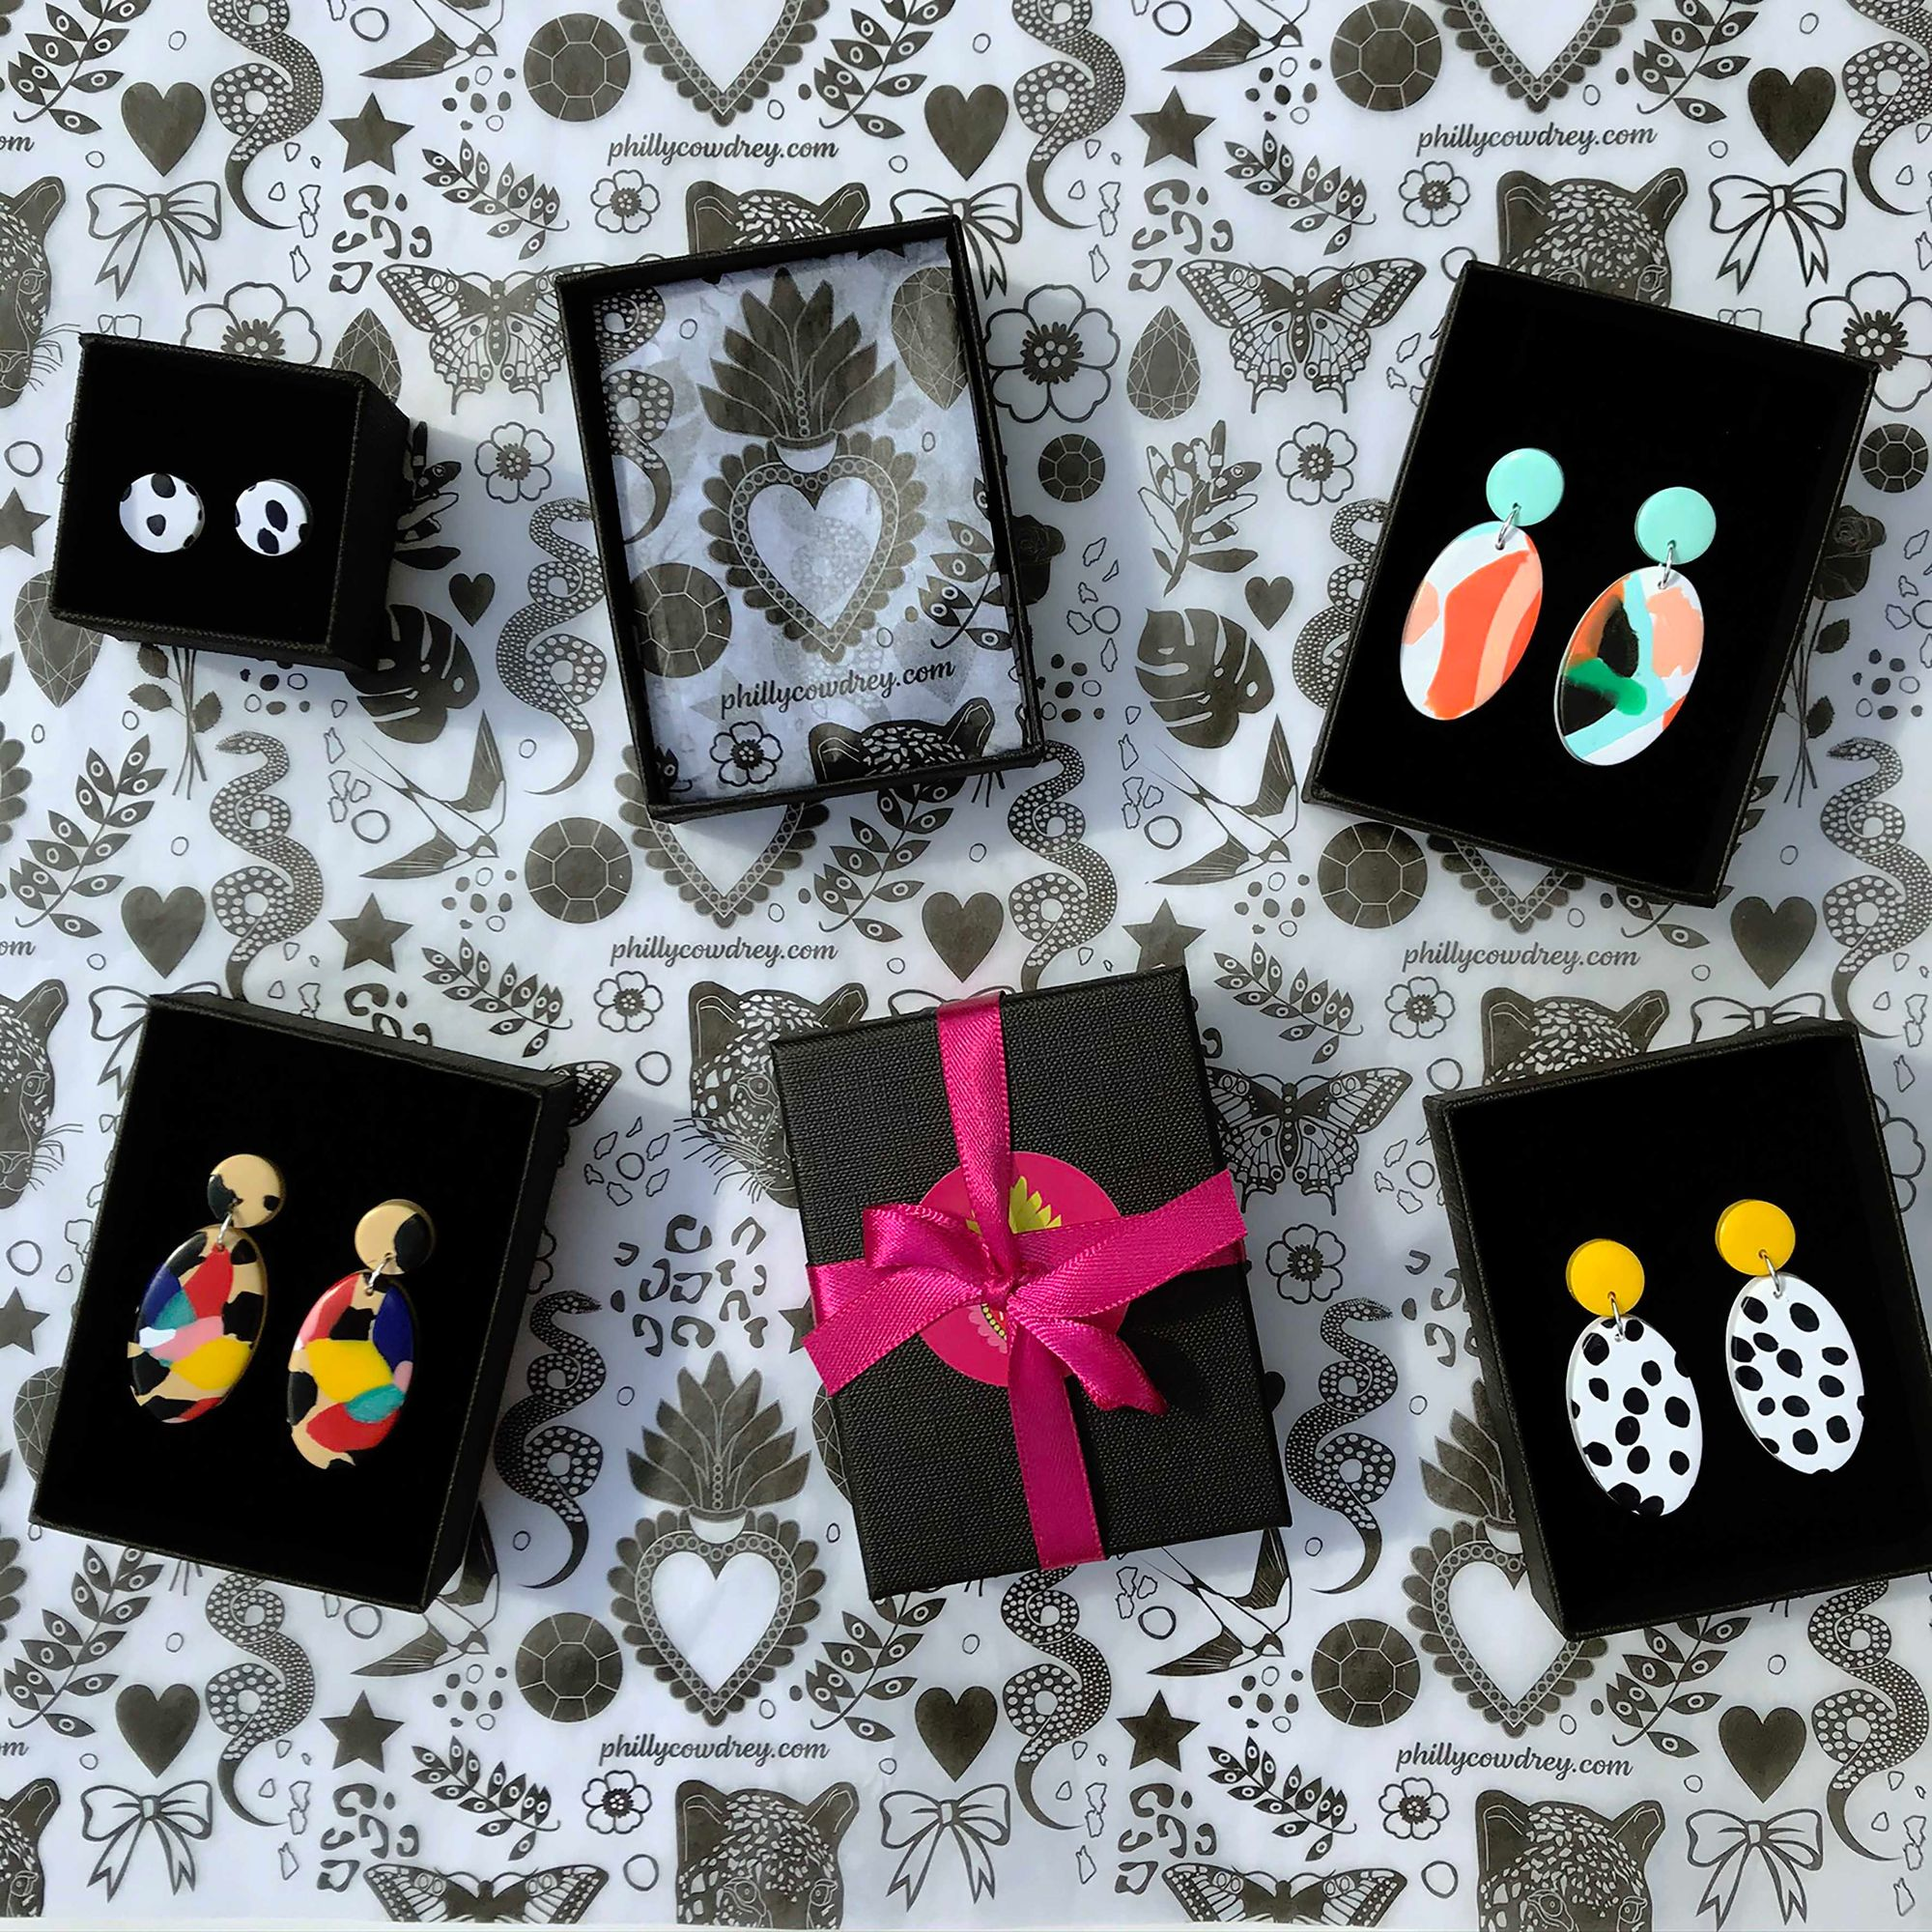 Handmade and Thoughtful Clay Jewelry with Philly Cowdrey Designs